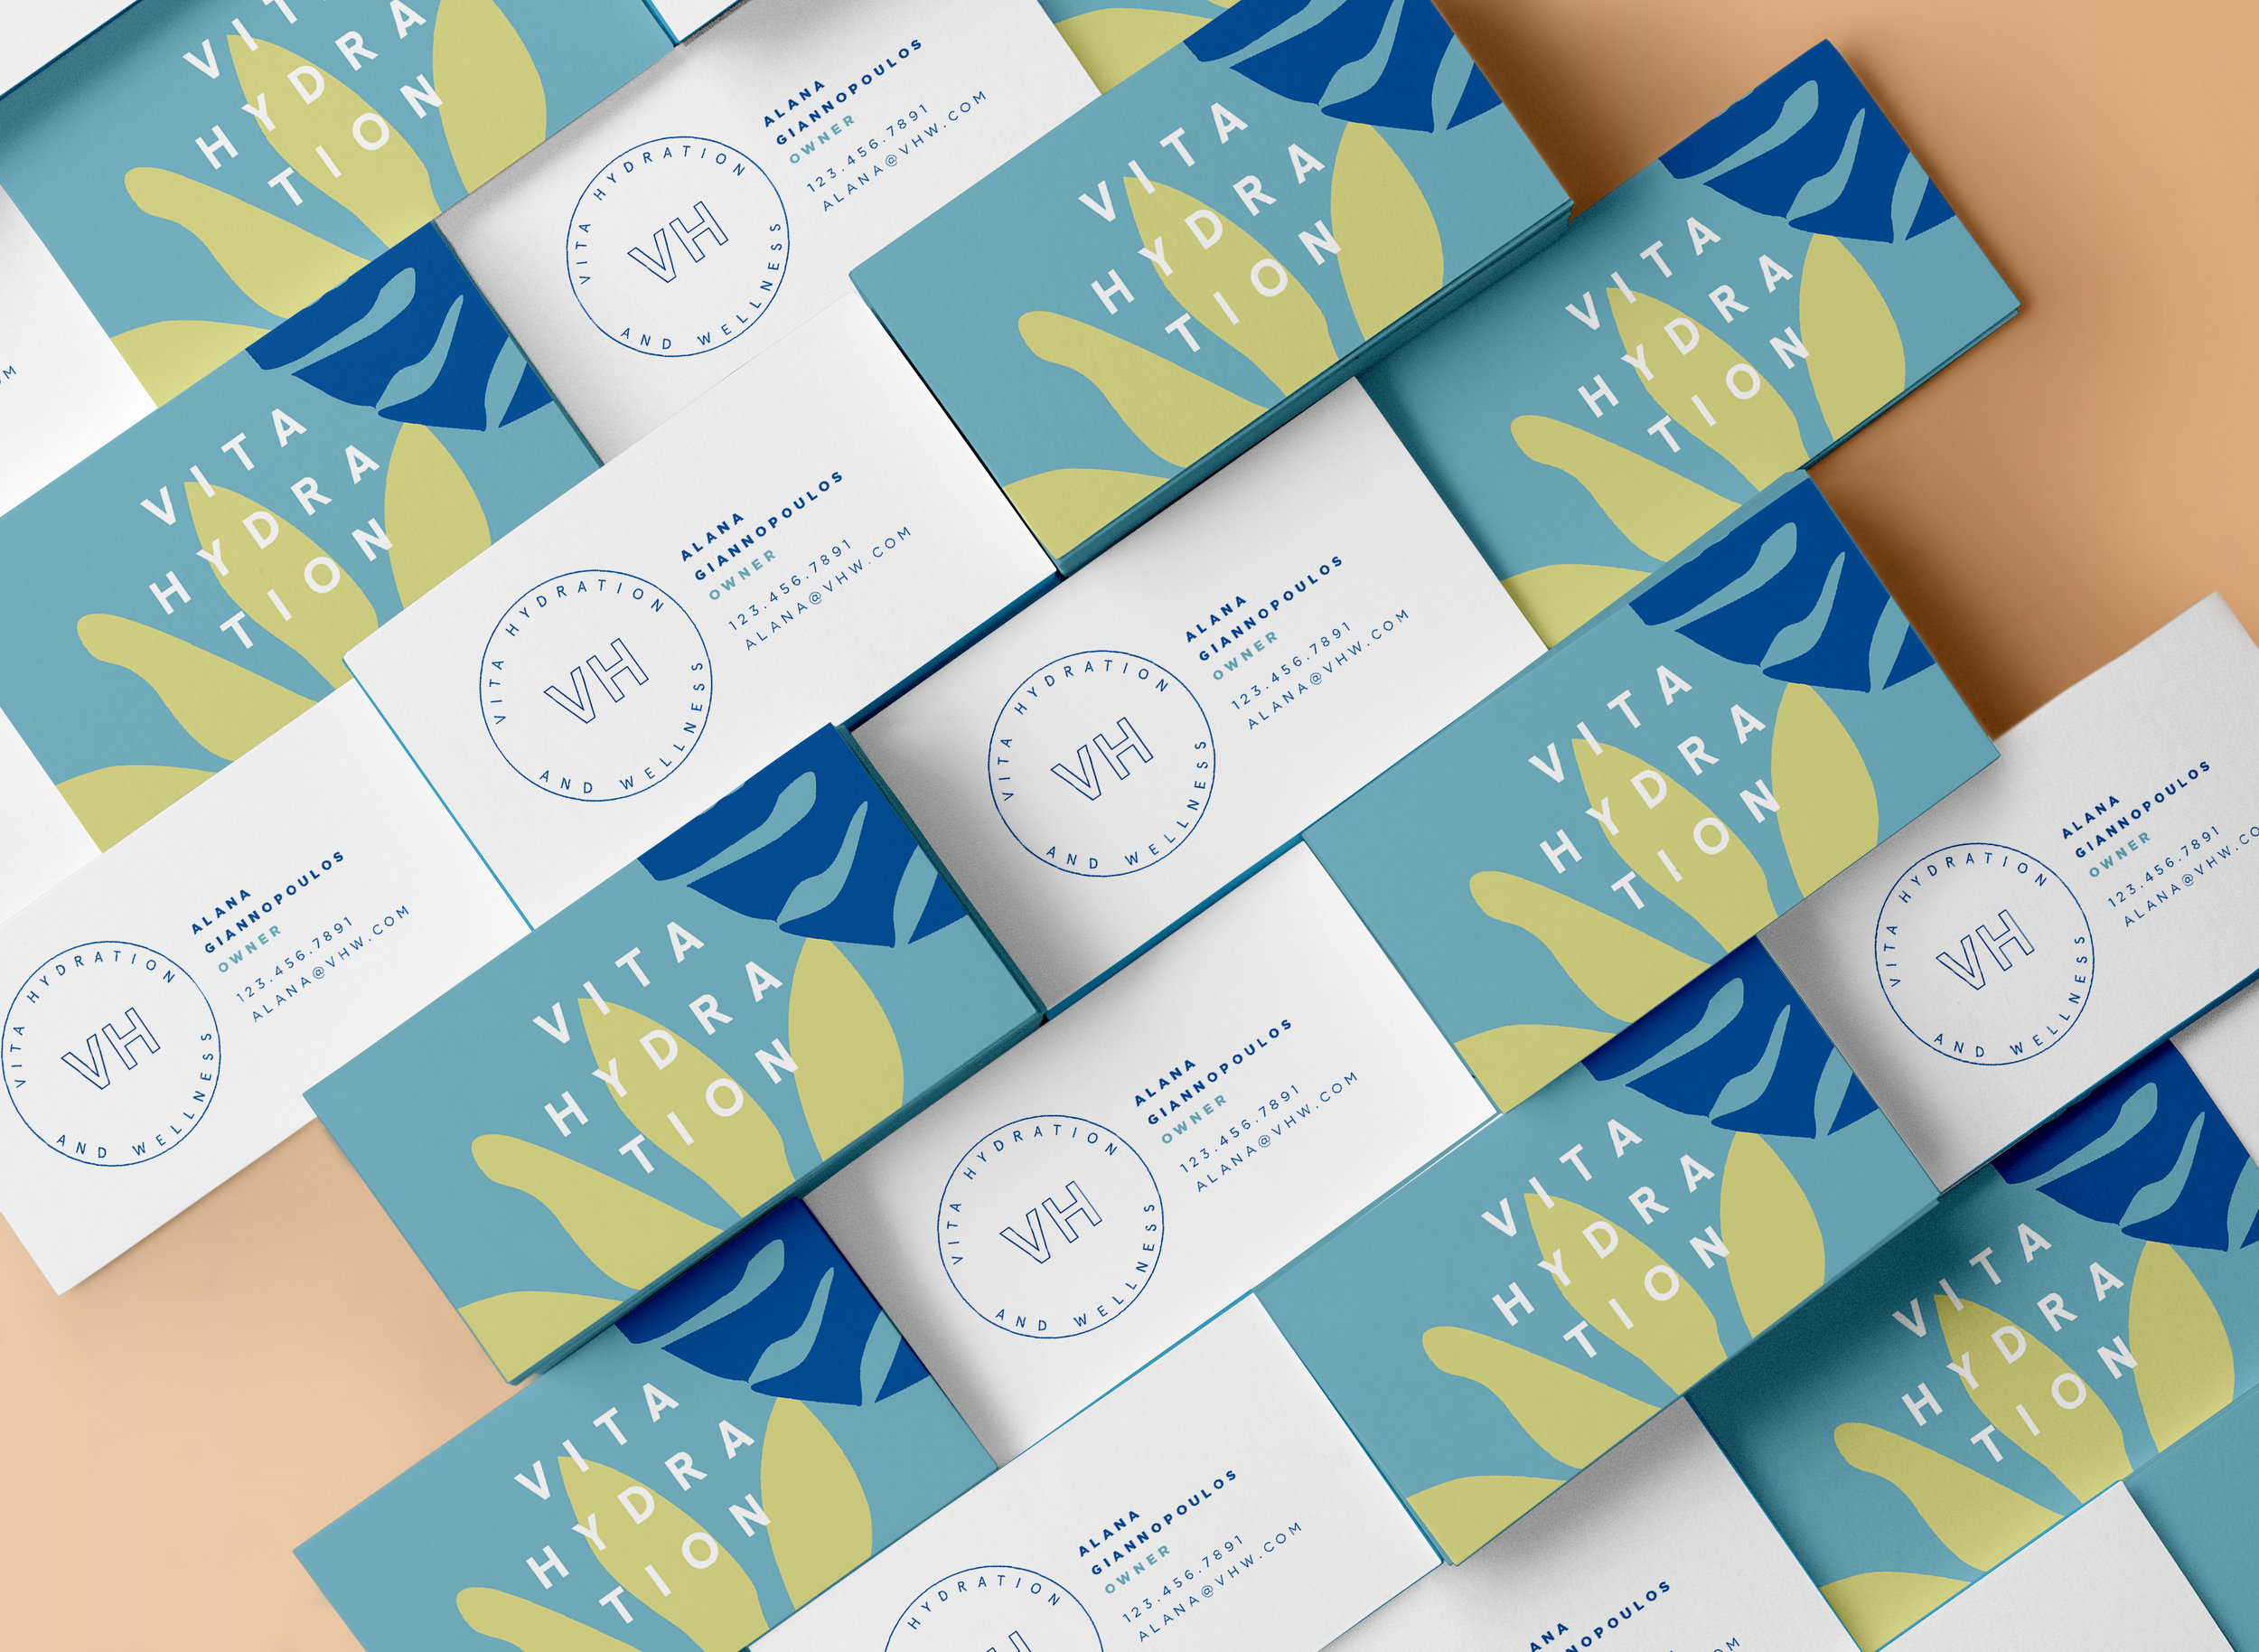 Business-Card-Mockup-vol-29-update.jpg